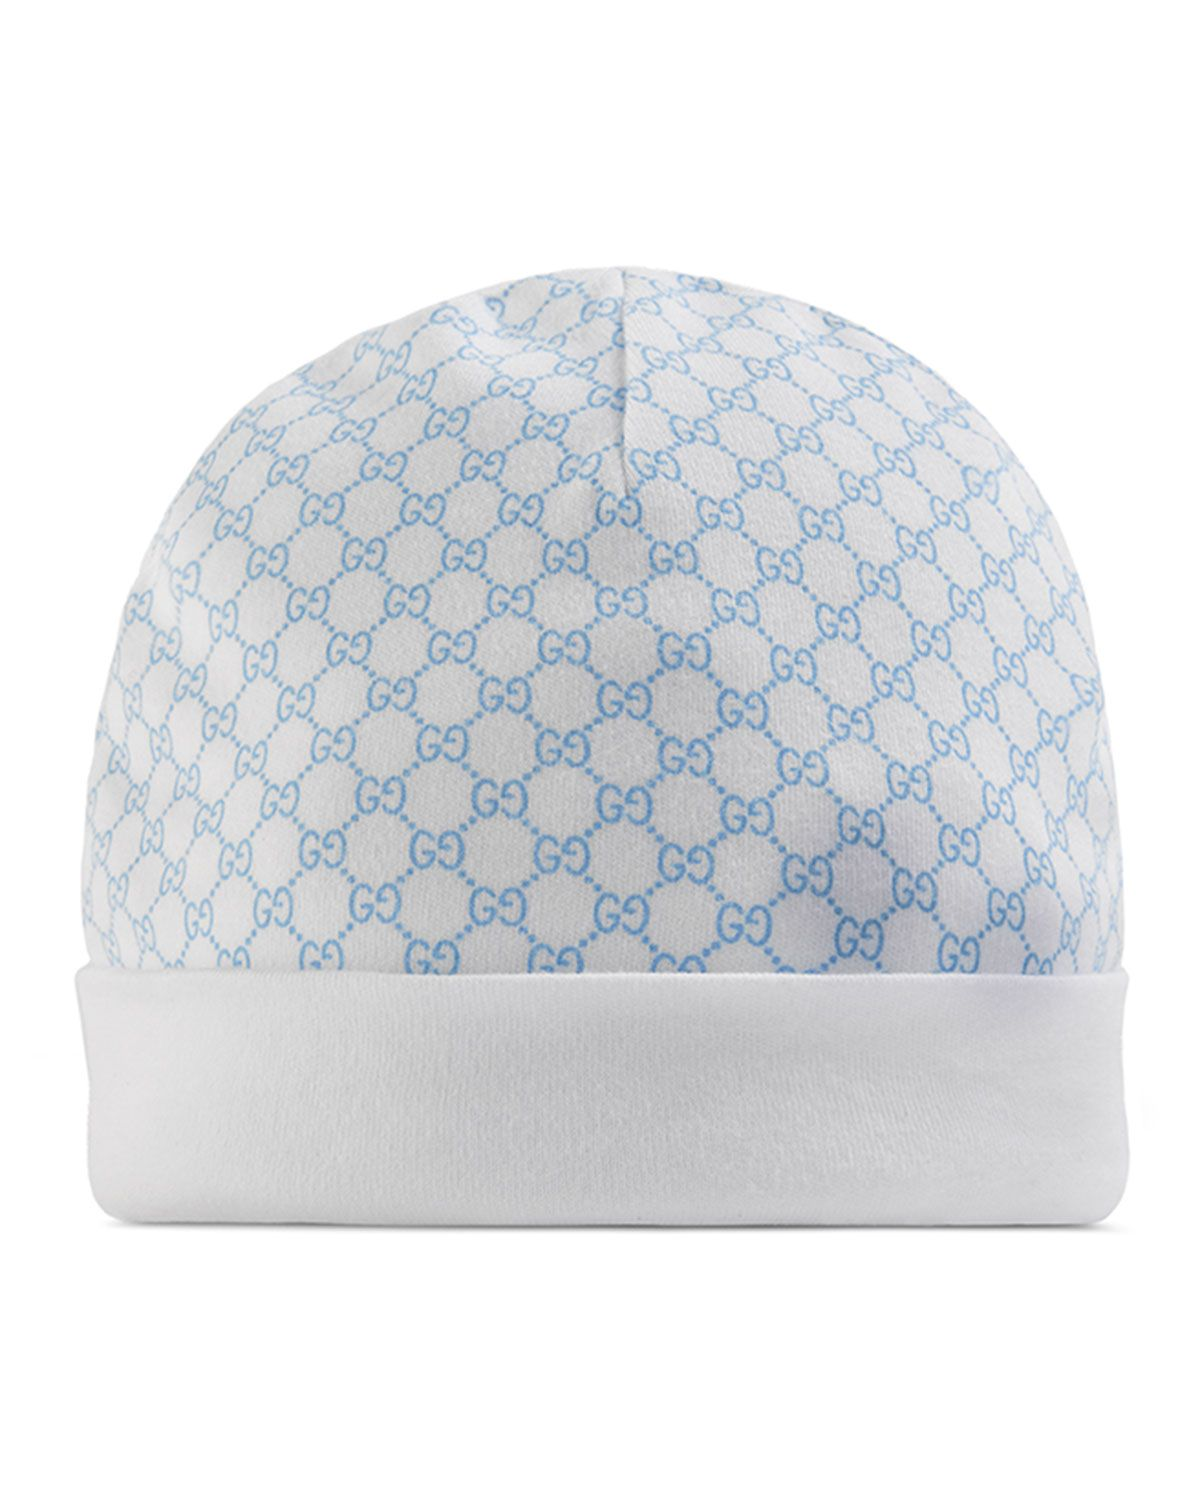 37f36efd792 Gucci Cotton GG Baby Hat